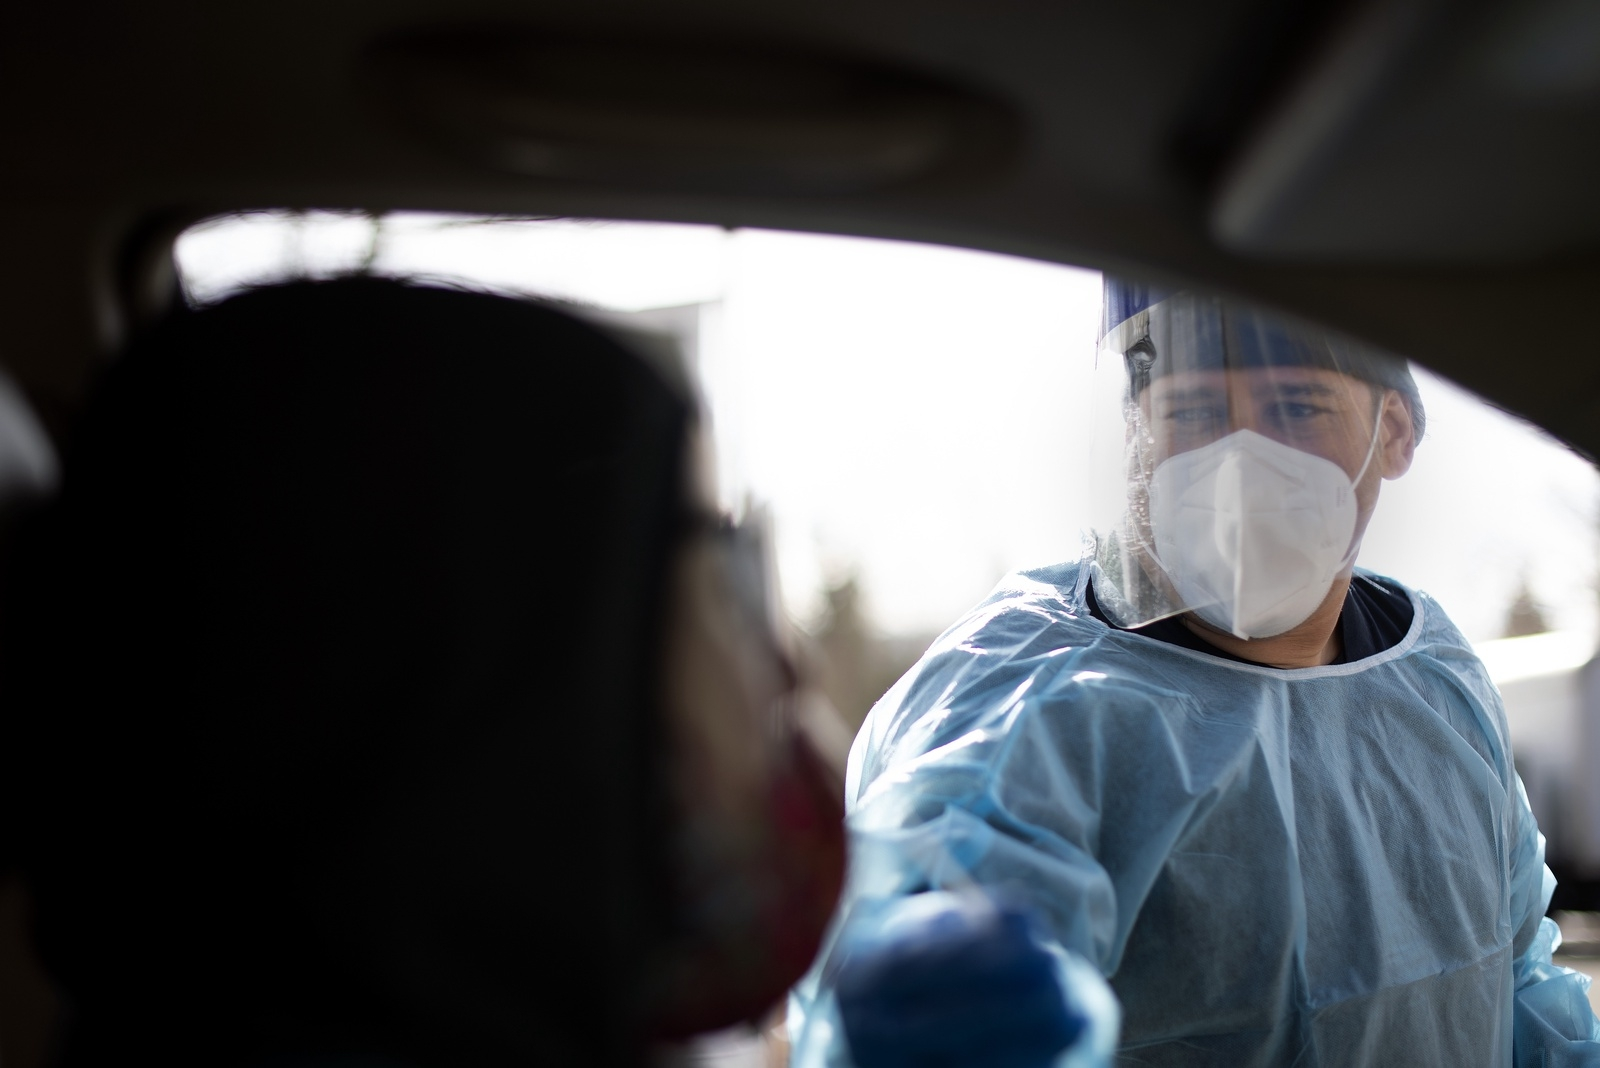 A MAKO Medical technician performs a COVID screening test at the Silverthorne drive-through testing site on Friday, Nov. 20.